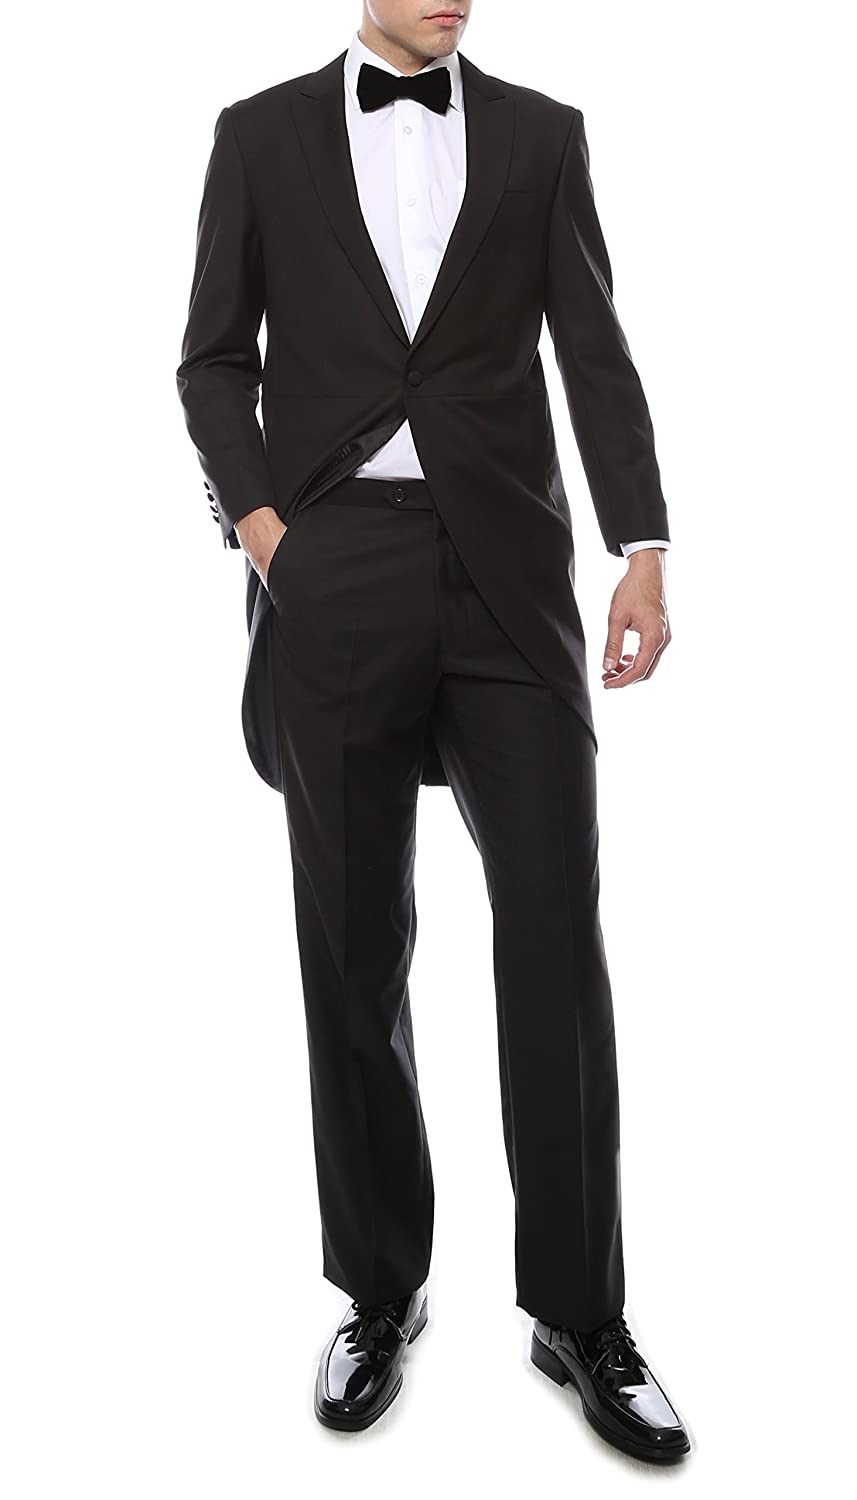 1930s Men's Suits History Victorian Tail Tuxedo  AT vintagedancer.com